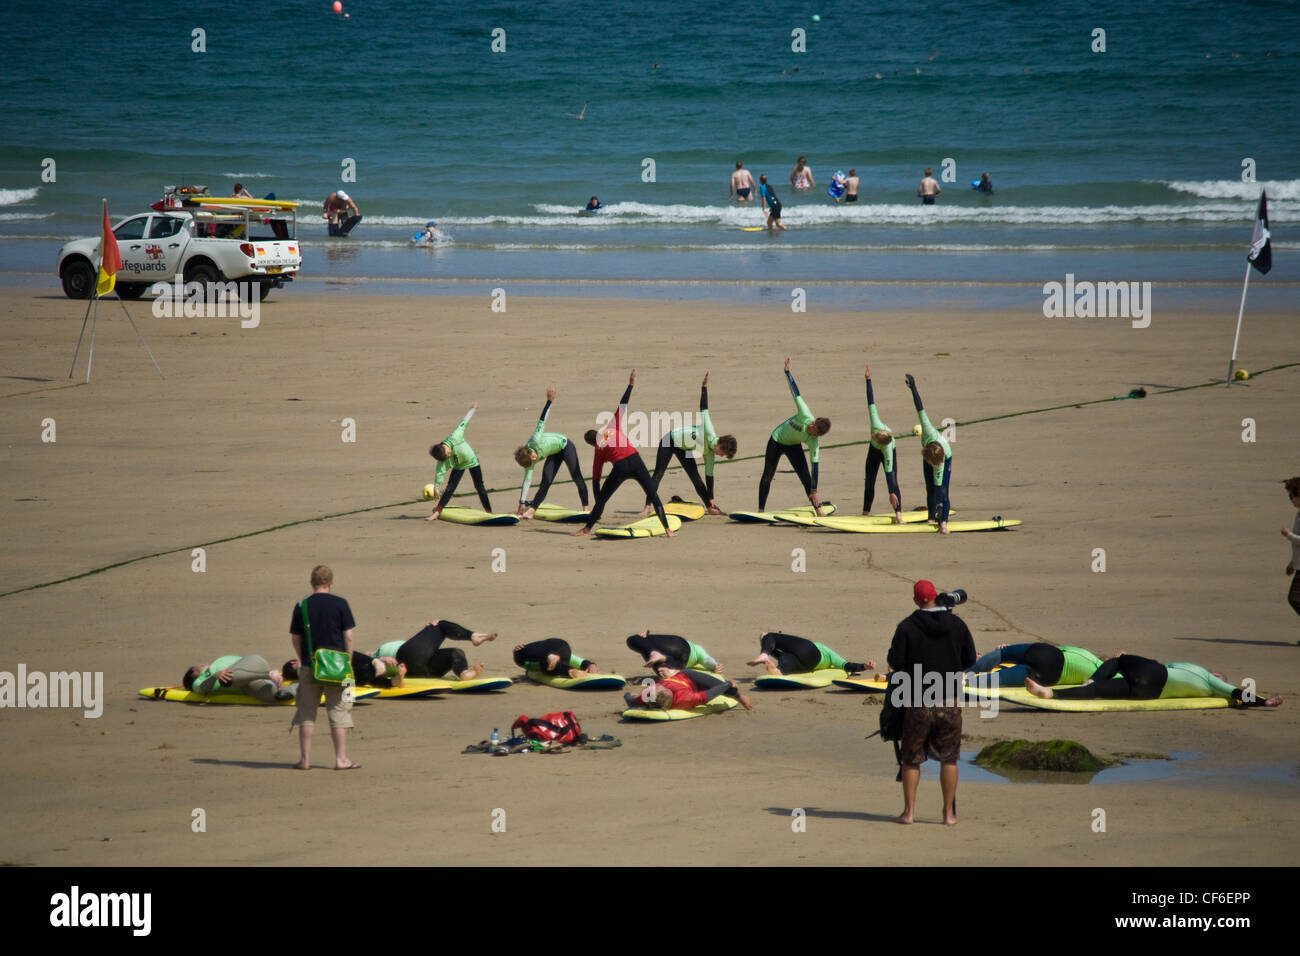 Surfers warming up on the beach at a surf school at Towan beach, Newquay. - Stock Image